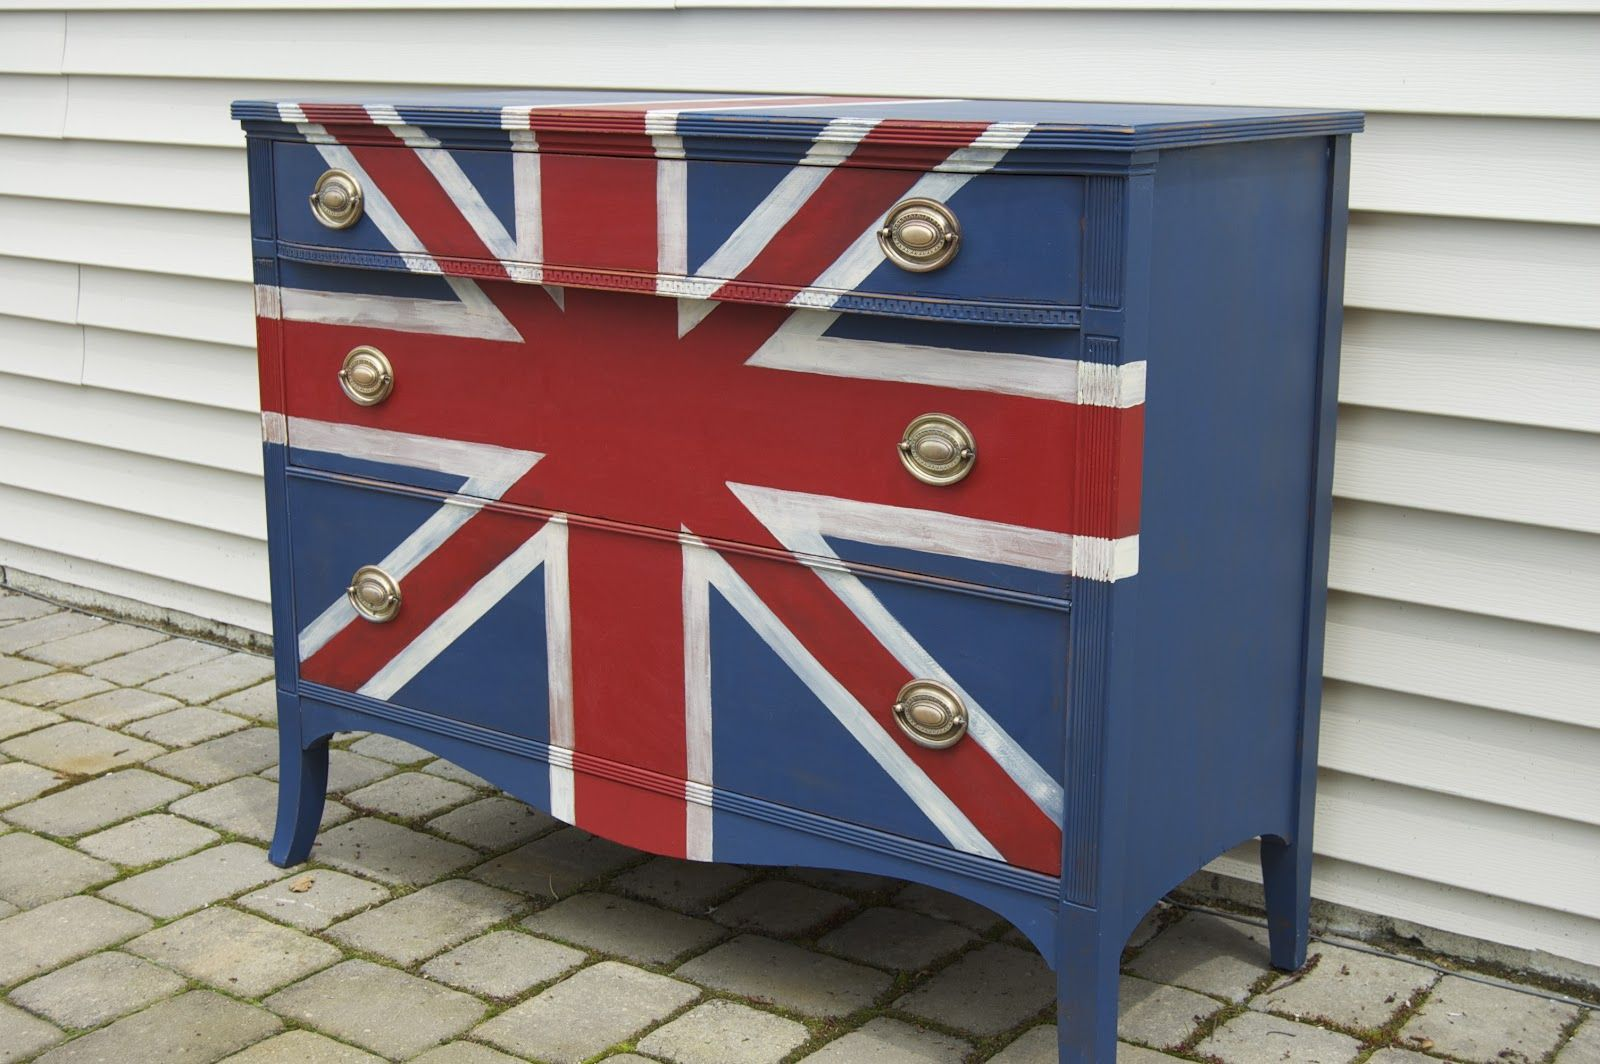 Seaside Shelter: How to Paint the Union Jack